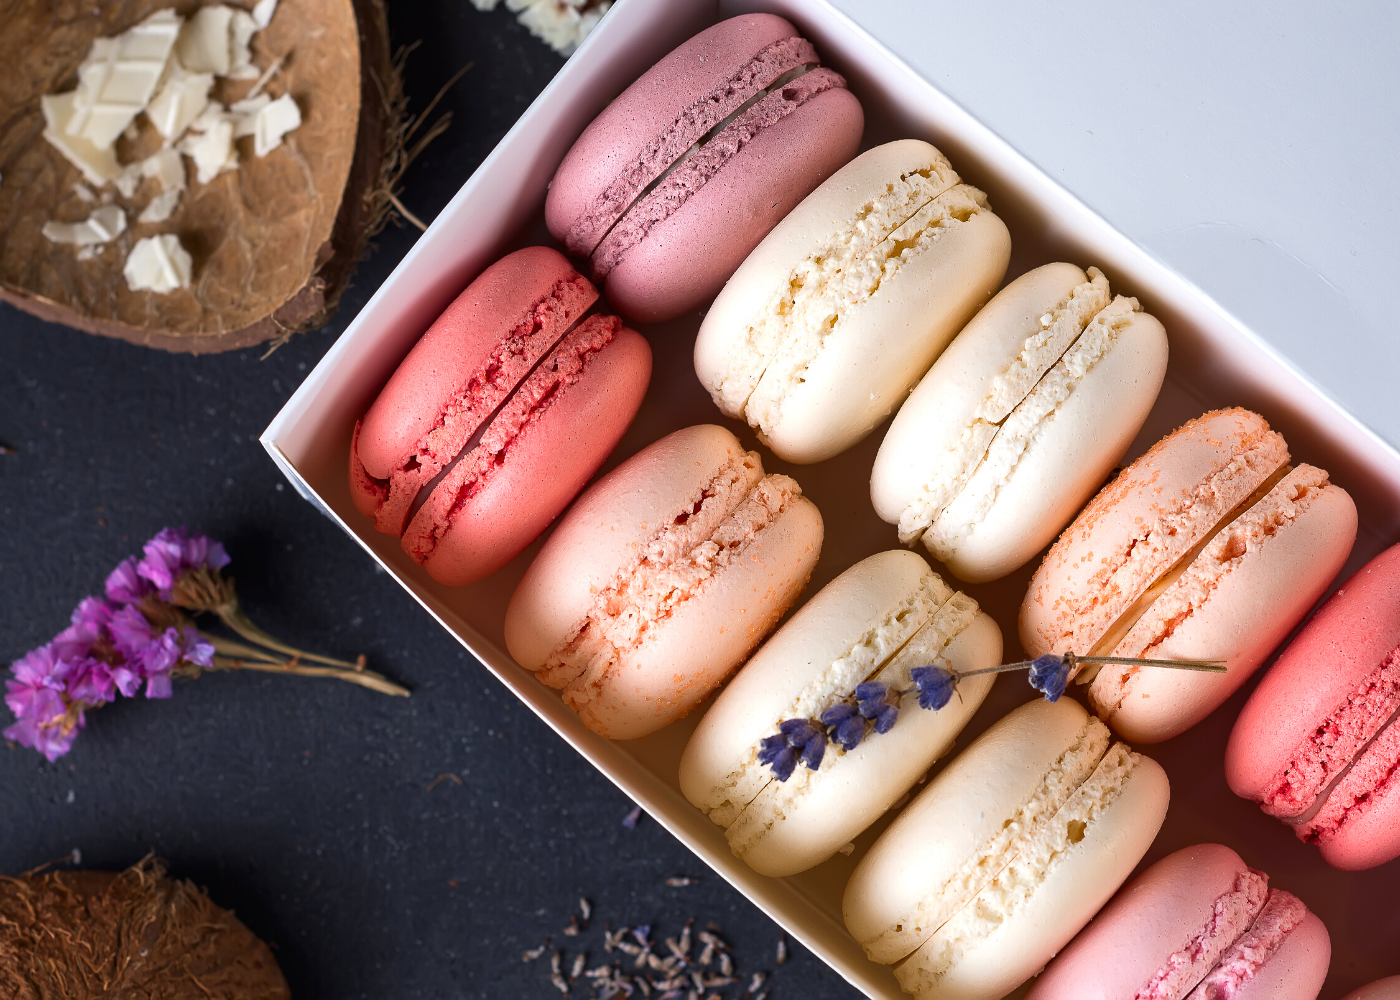 Prettiest bites ever? Best macarons in Singapore that deliver on aesthetics and taste